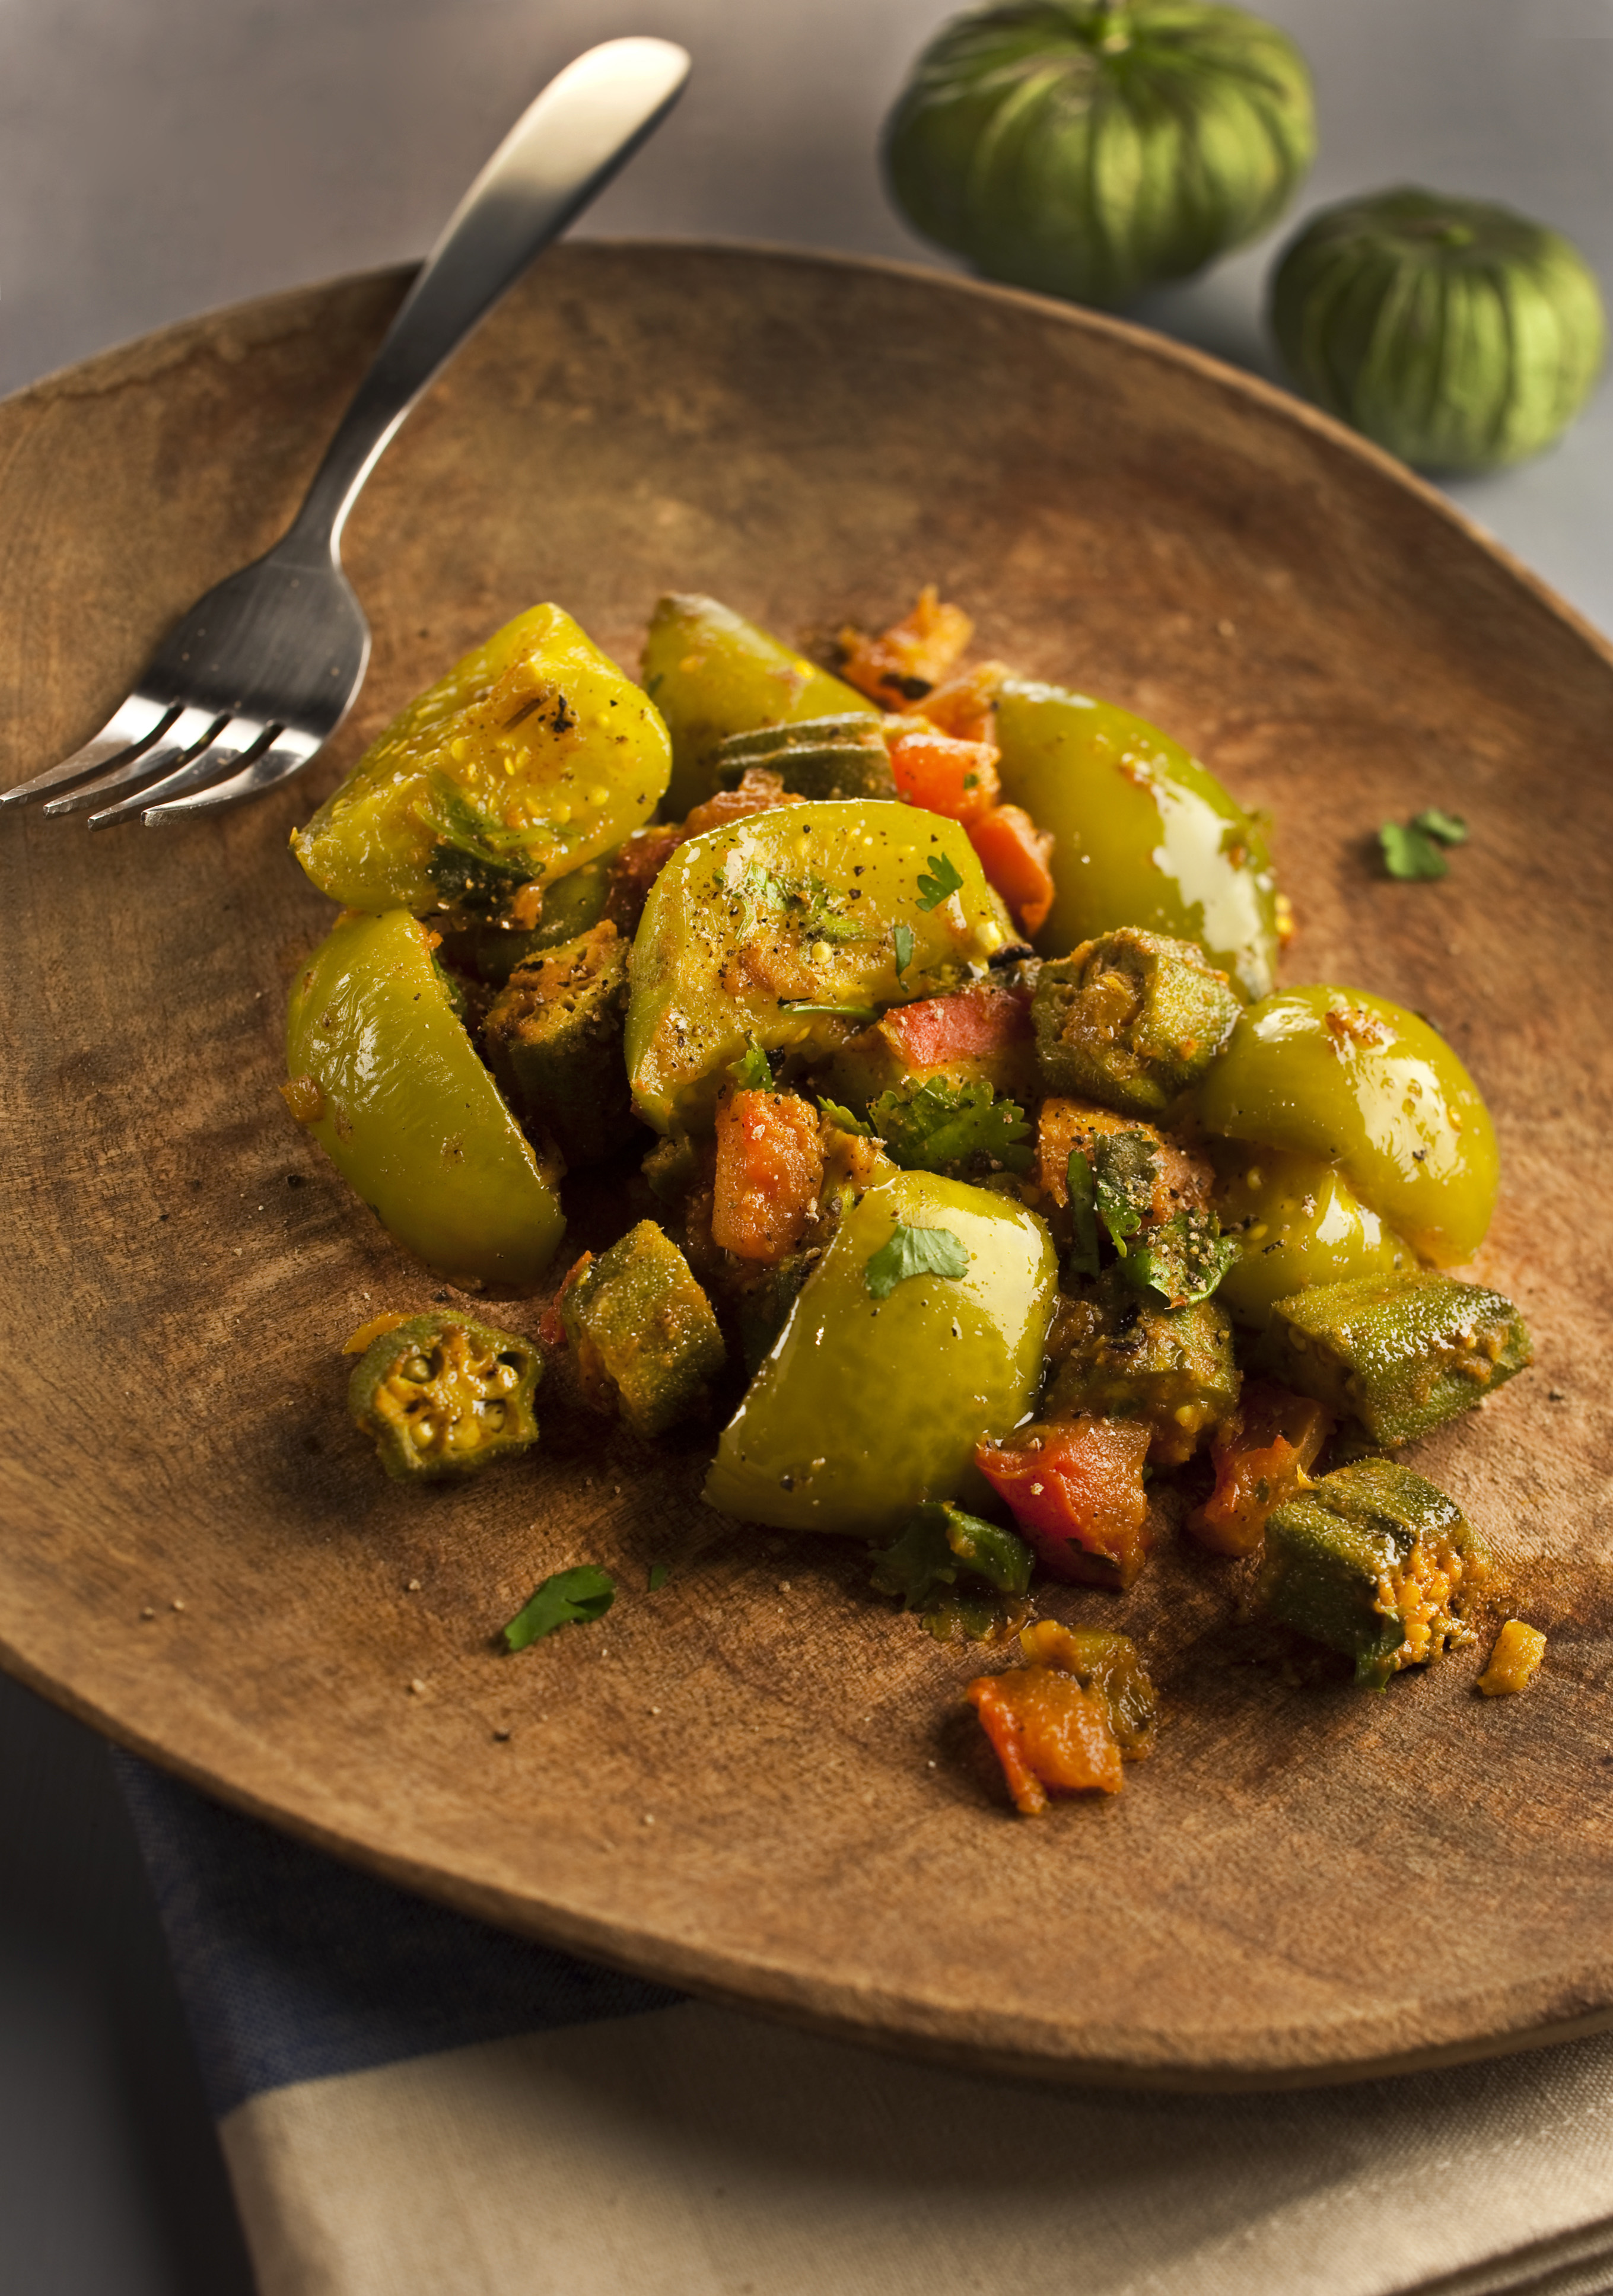 The tomatillo adds zing to many dishes.